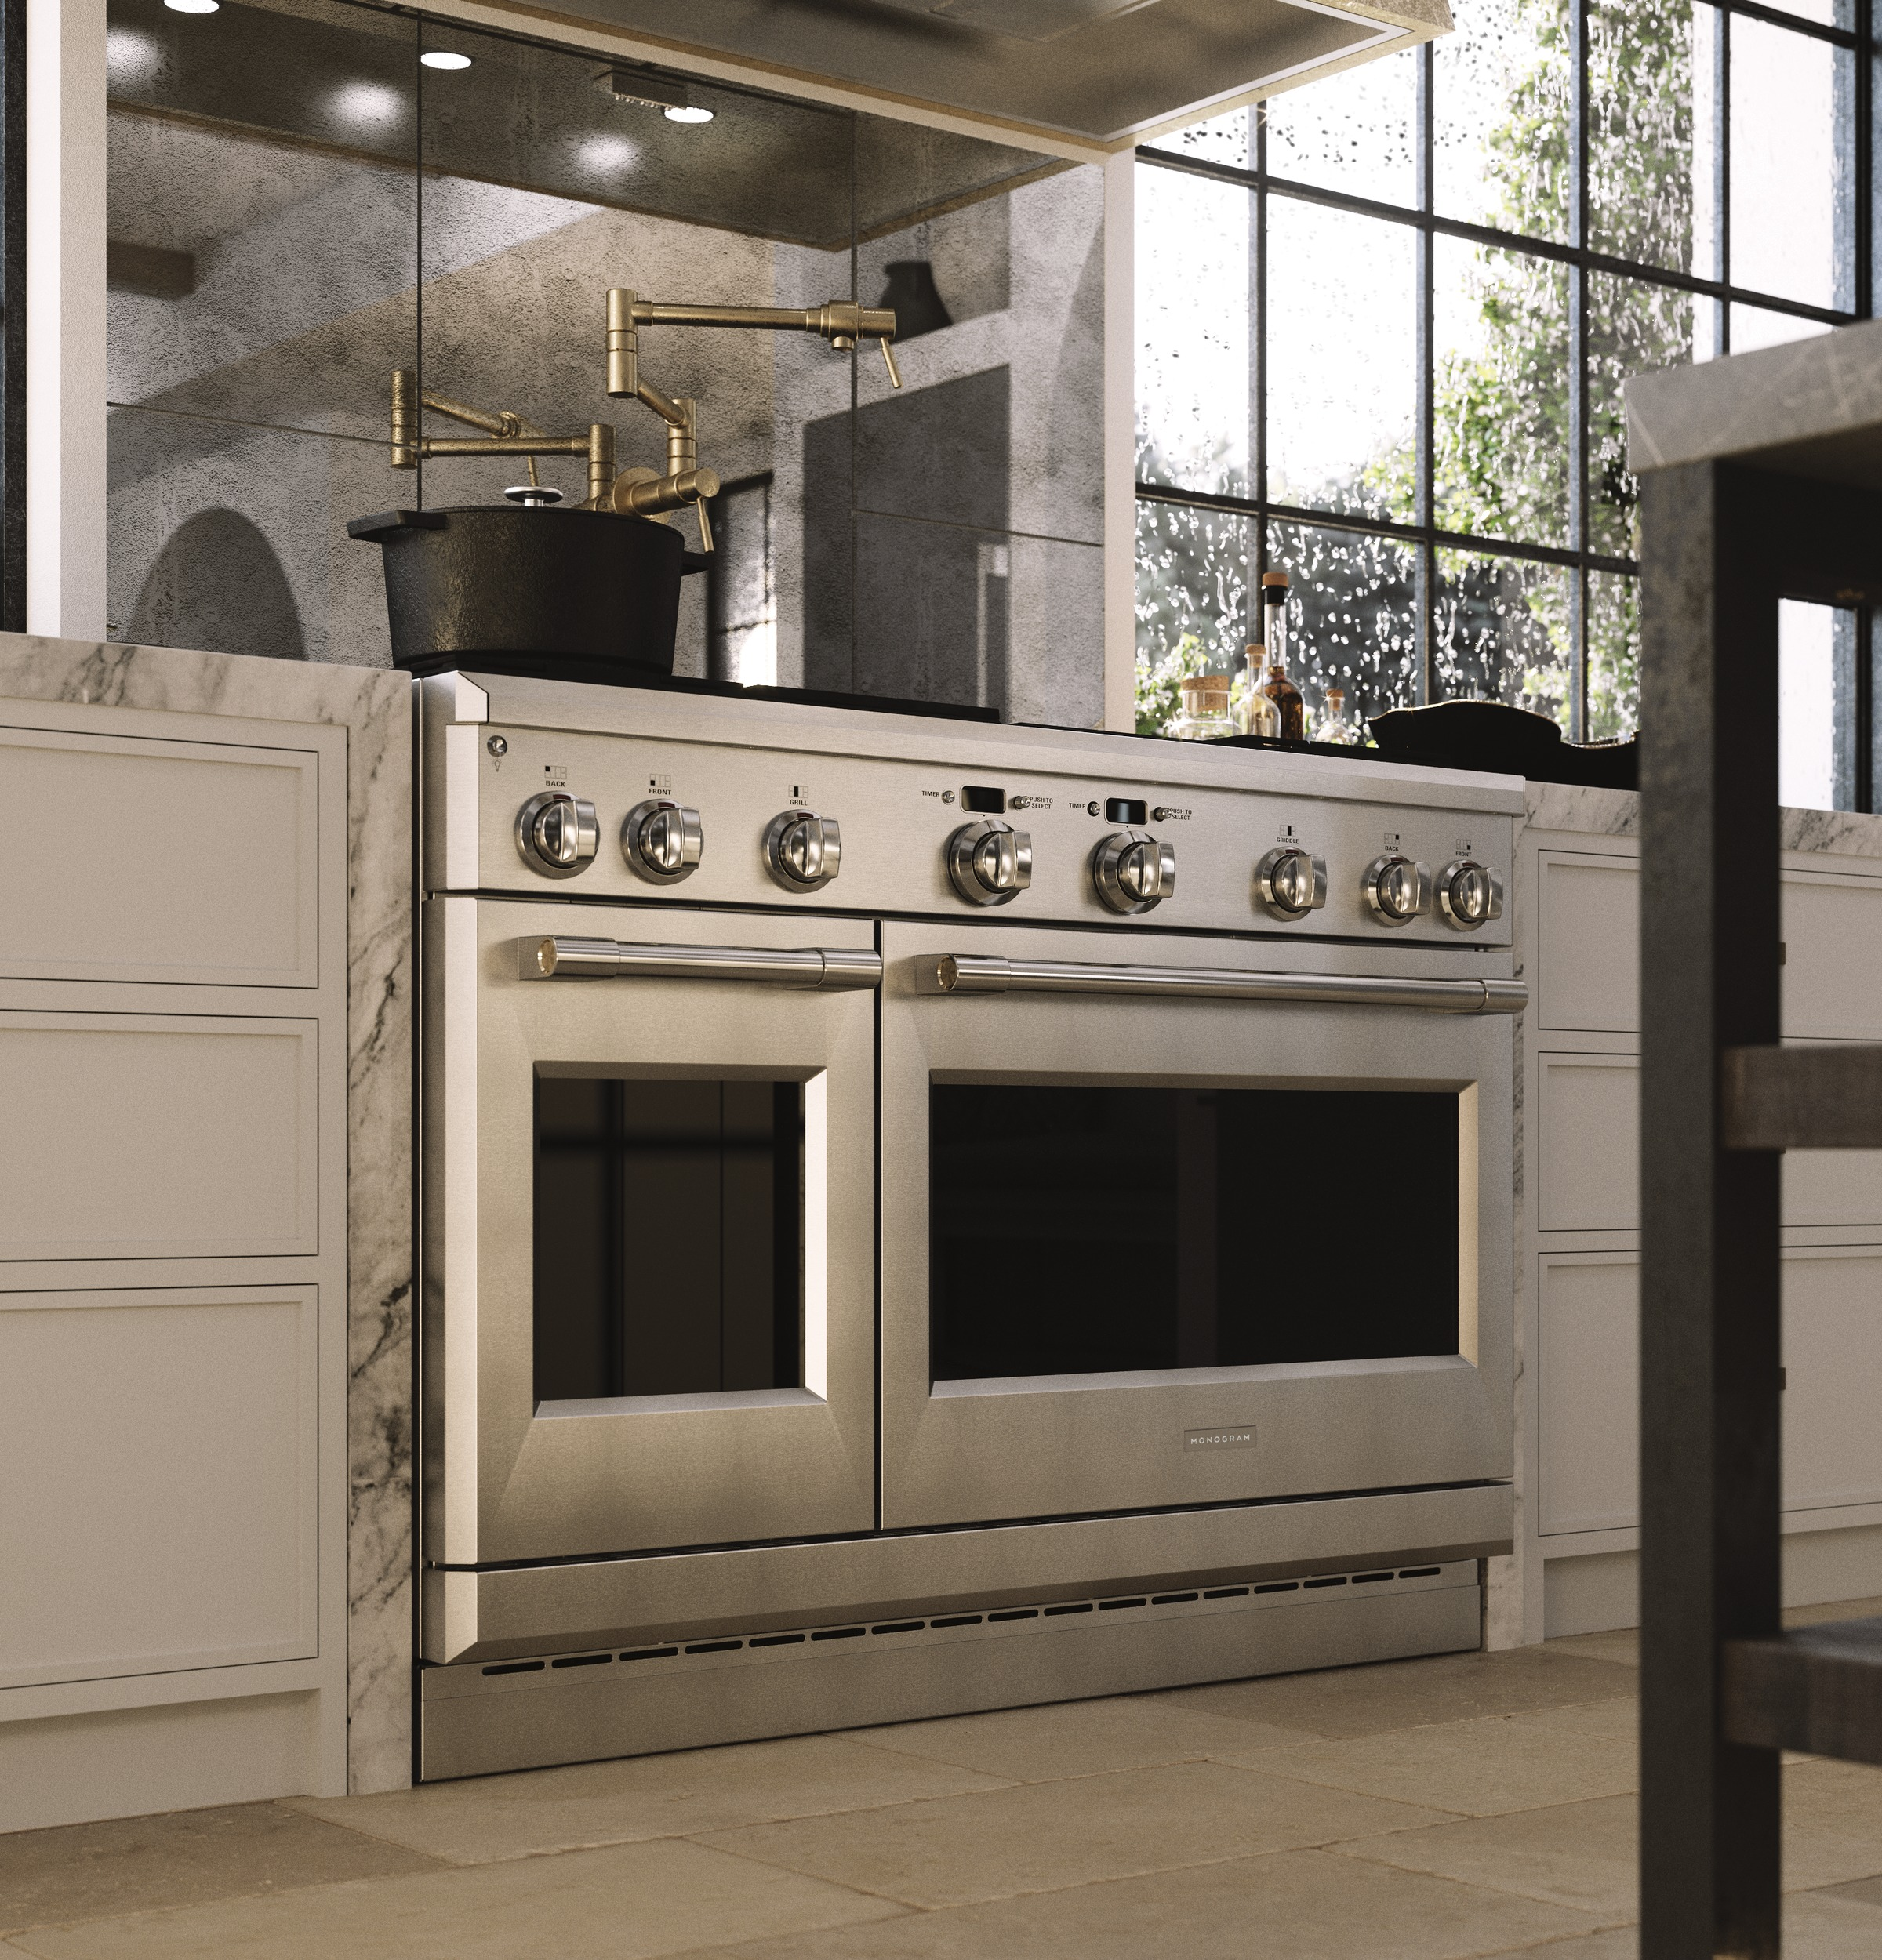 "Model: ZDP484NGNSS | Monogram Monogram 48"" Dual-Fuel Professional Range with 4 Burners, Grill, and Griddle (Natural Gas)"